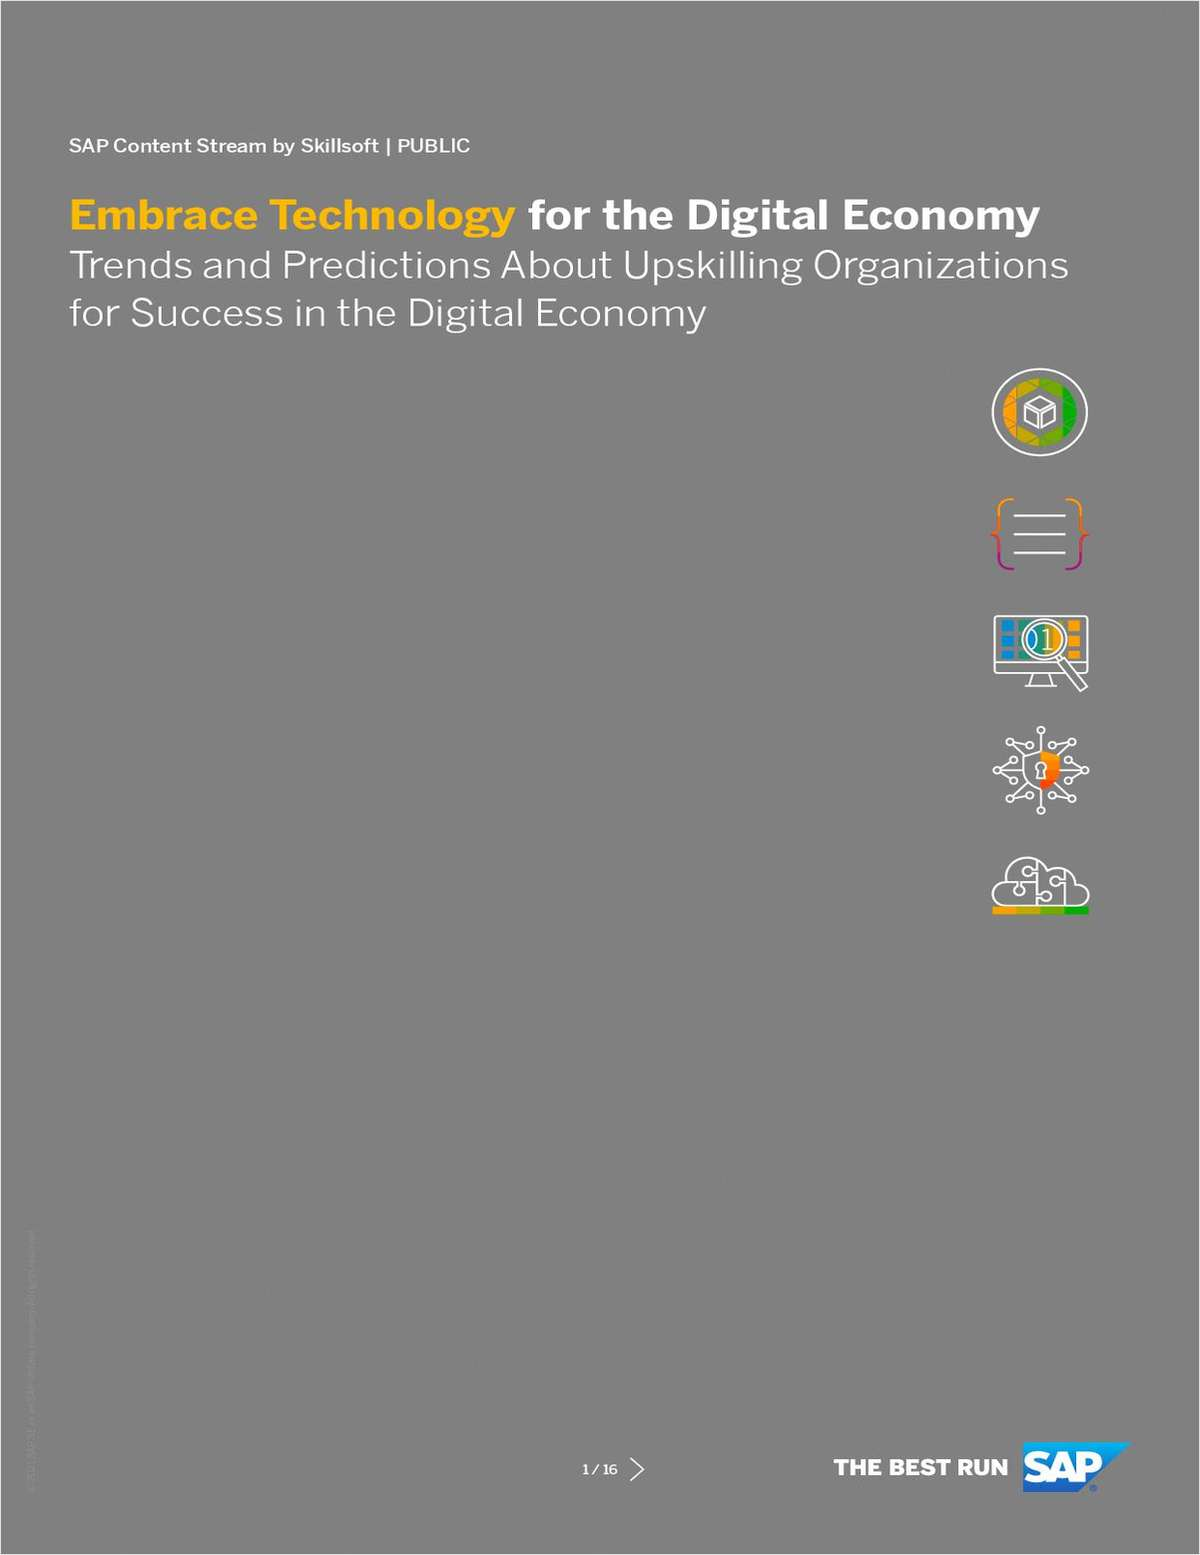 Trends and Predictions About Upskilling Organizations for Success in the Digital Economy